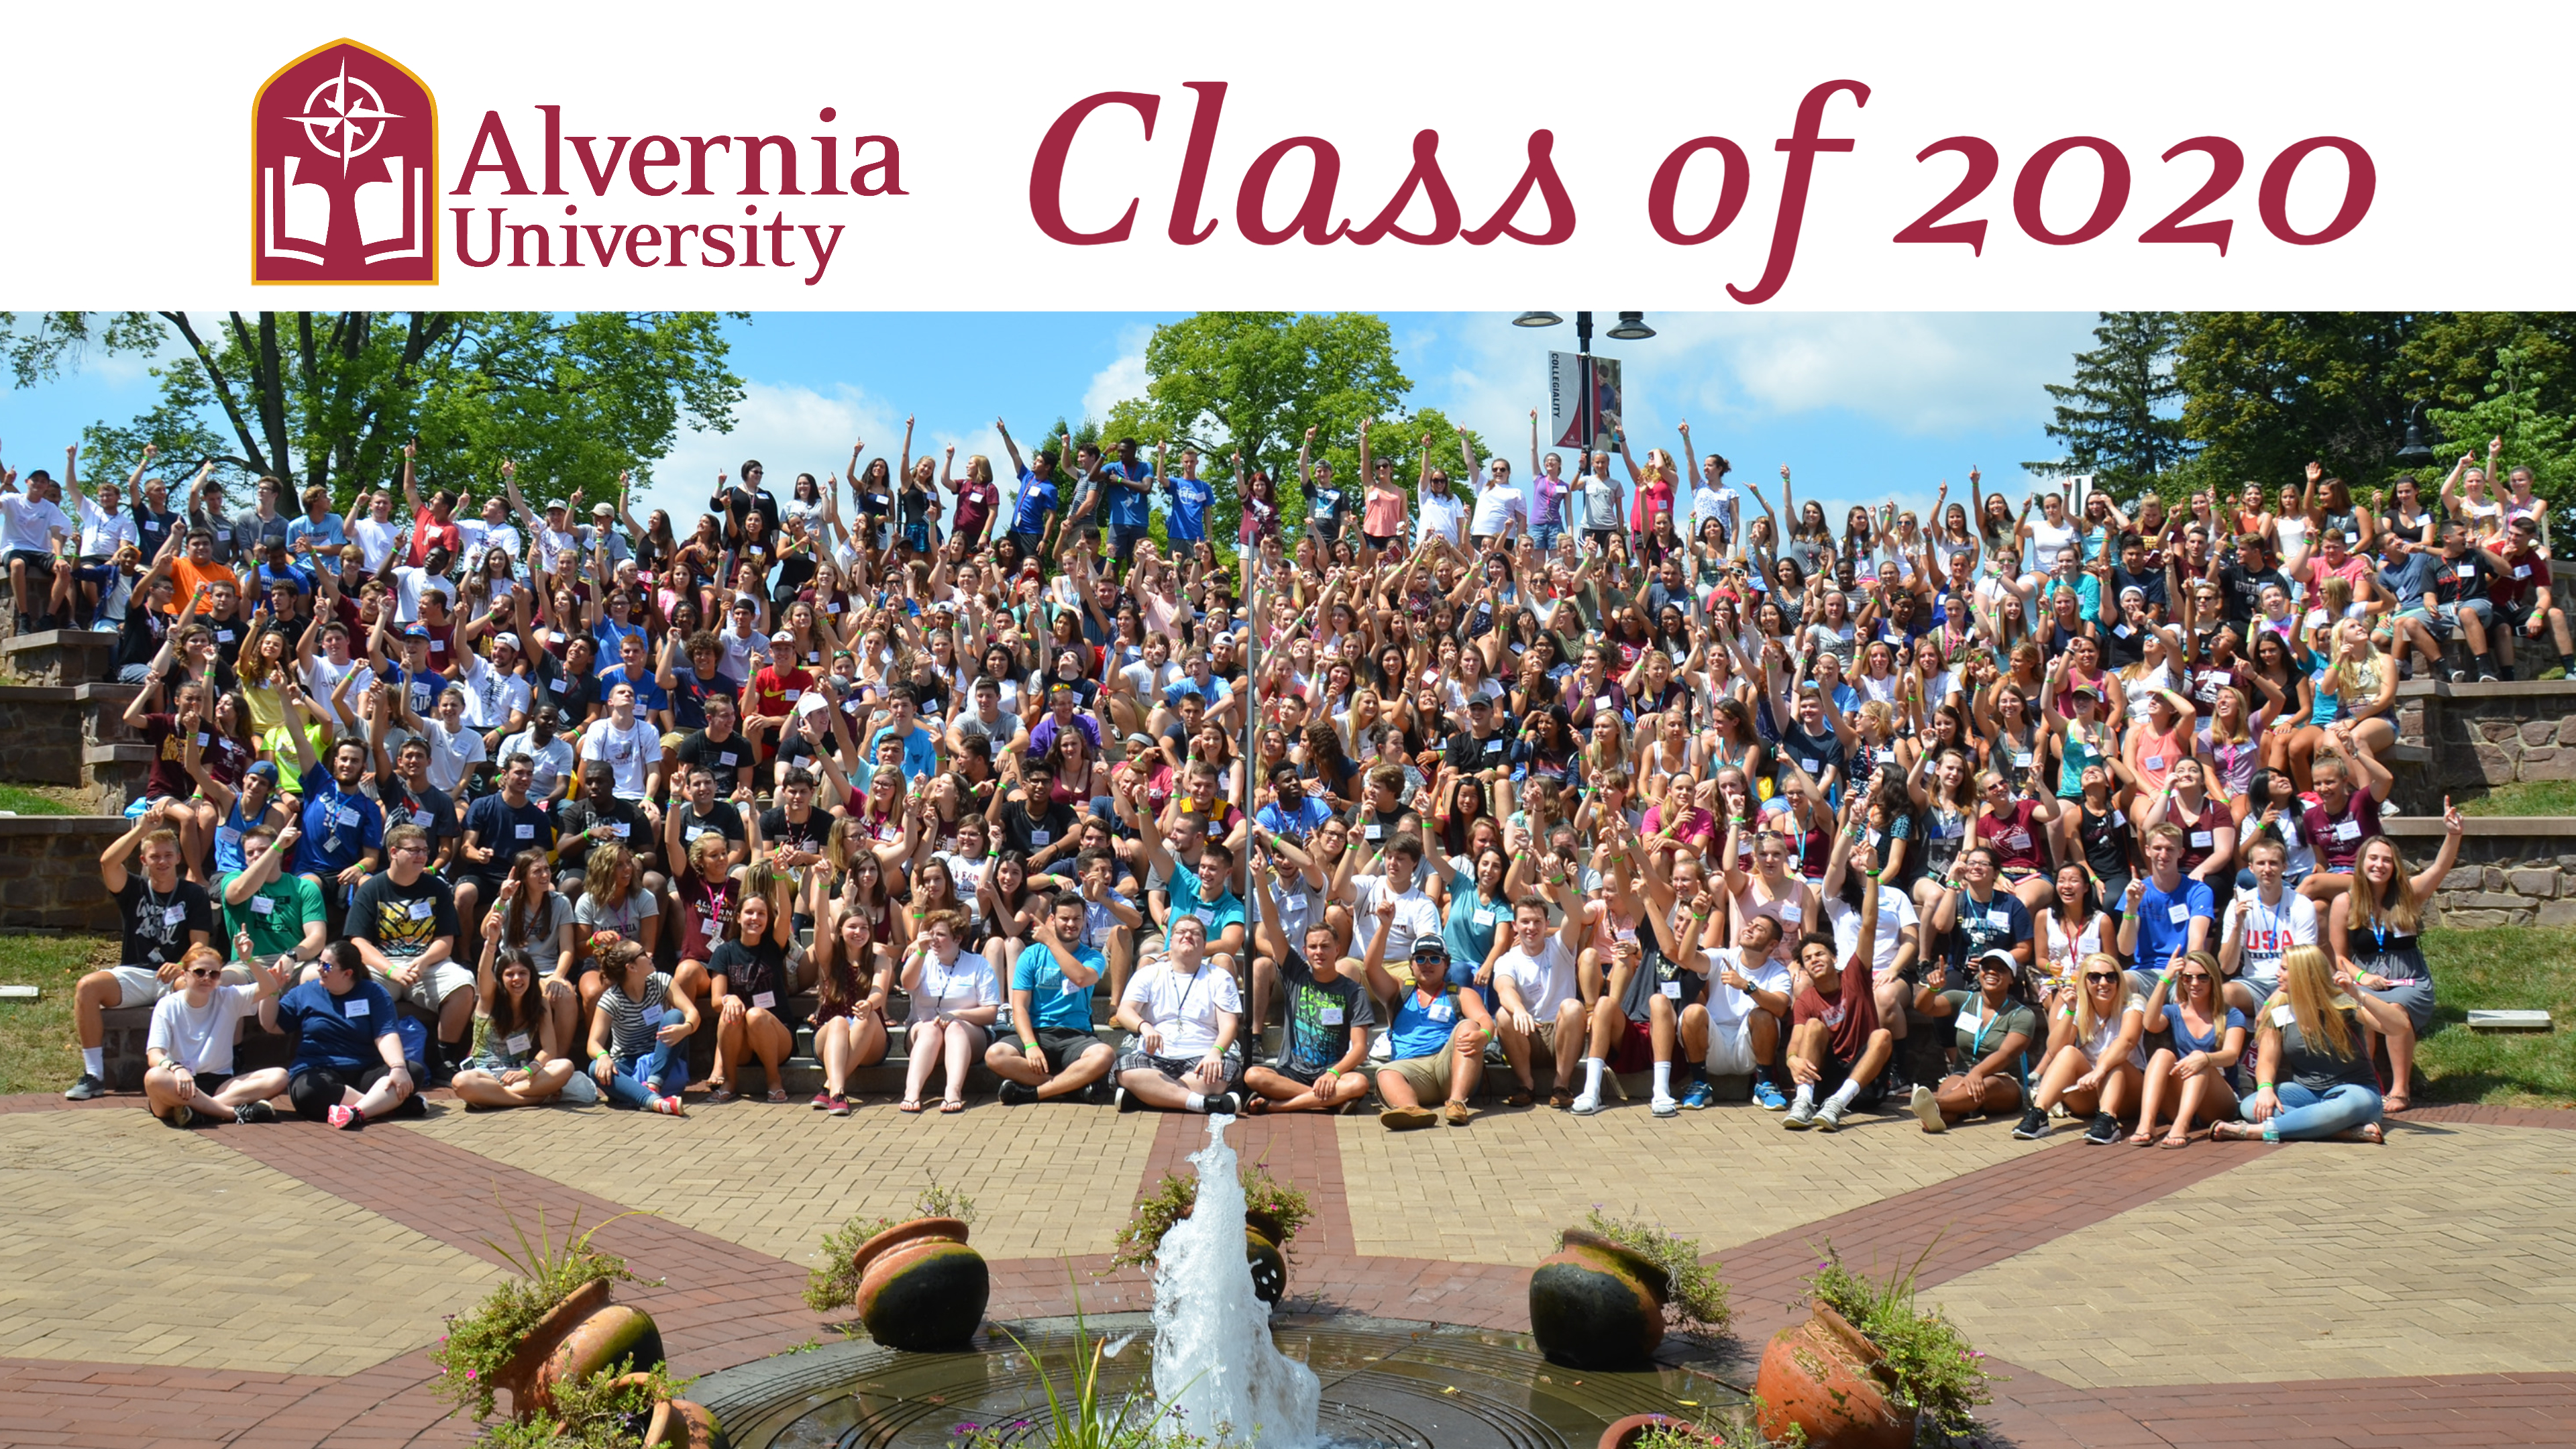 Alvernia University Class of 2020